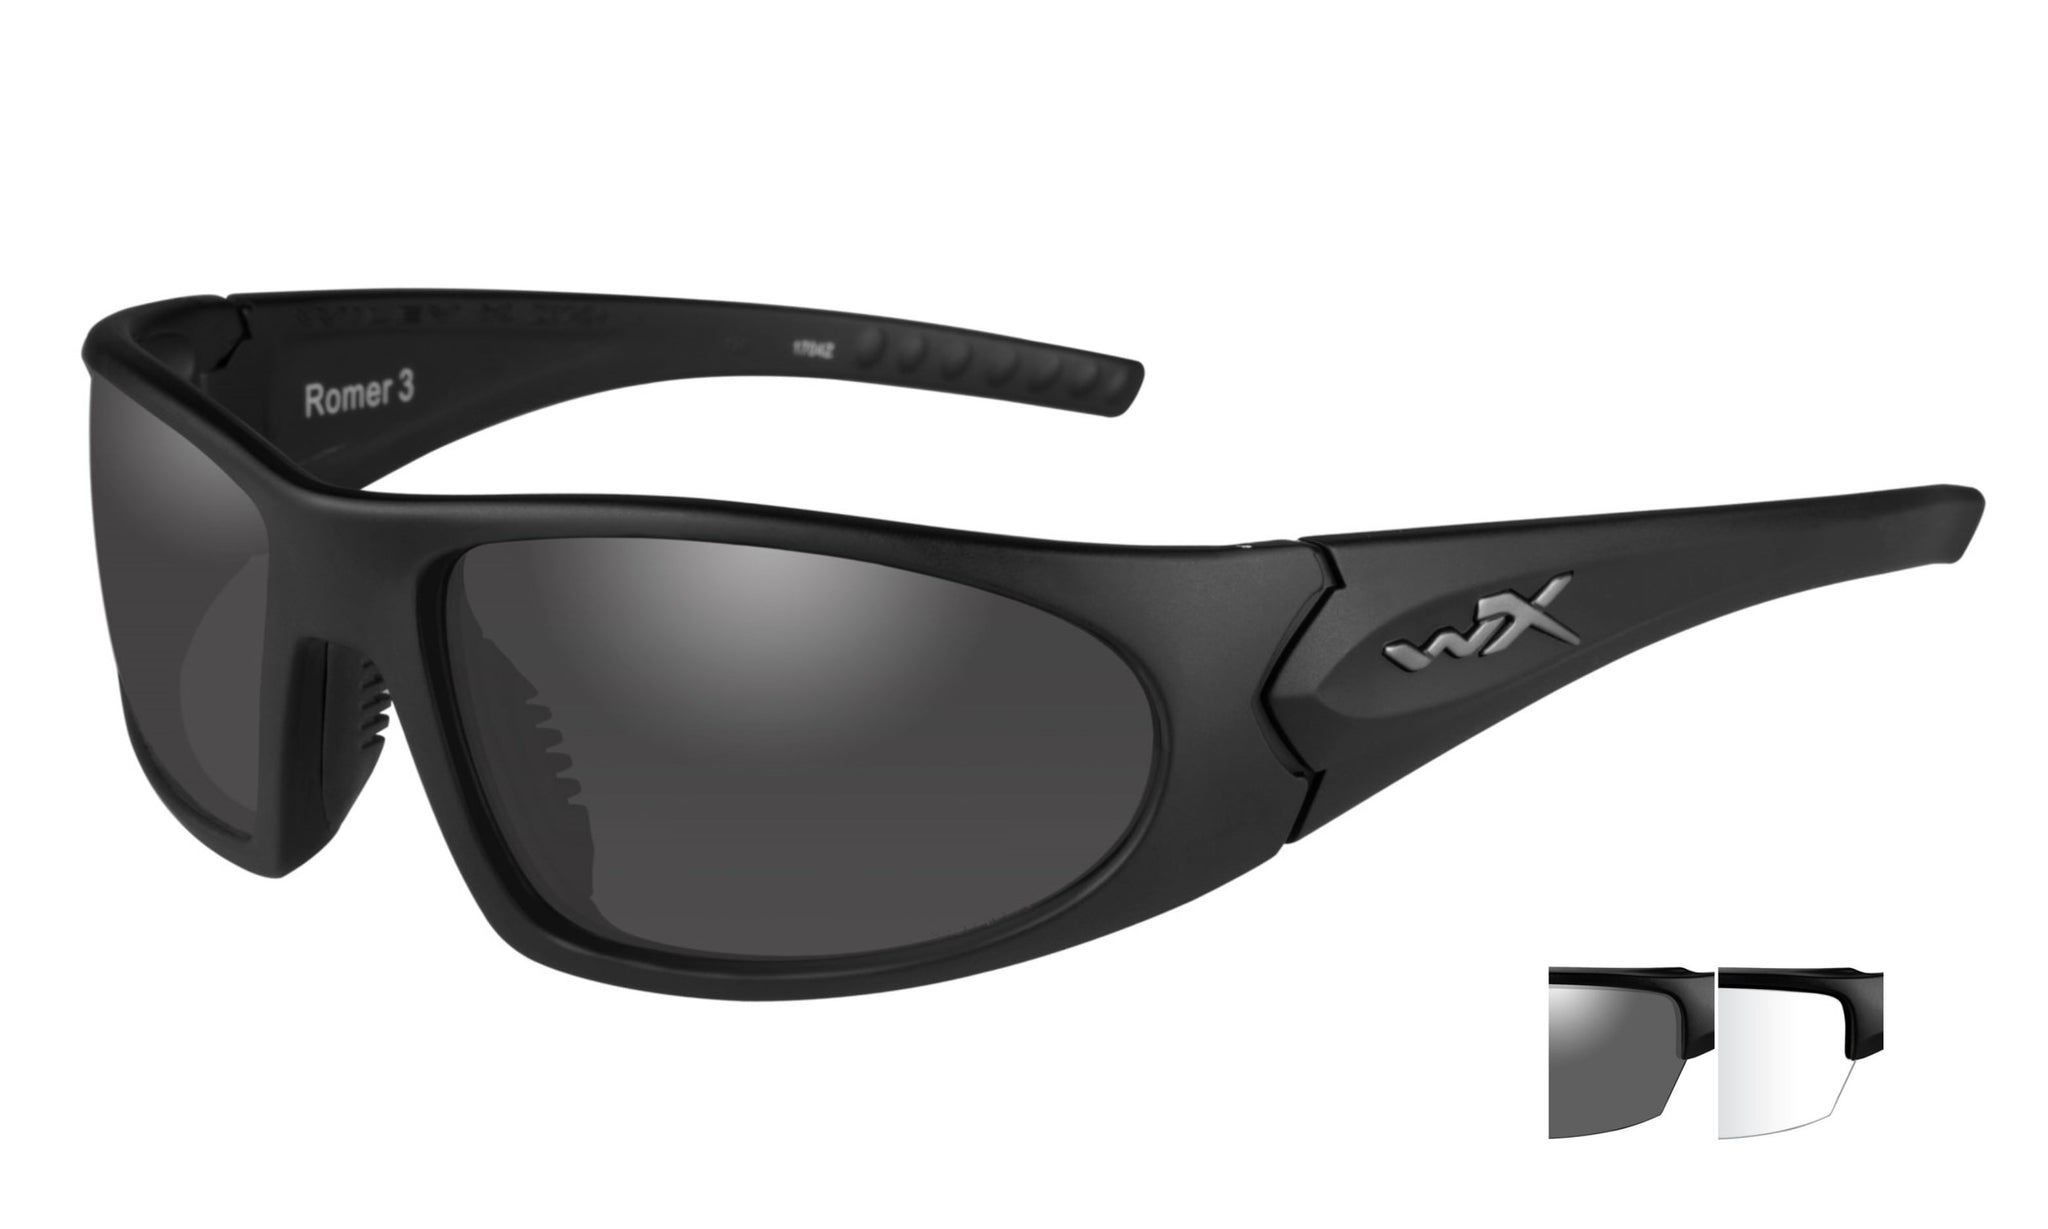 WILEY X SUNGLASSES - ROMER 3  (2 OPTIONS)